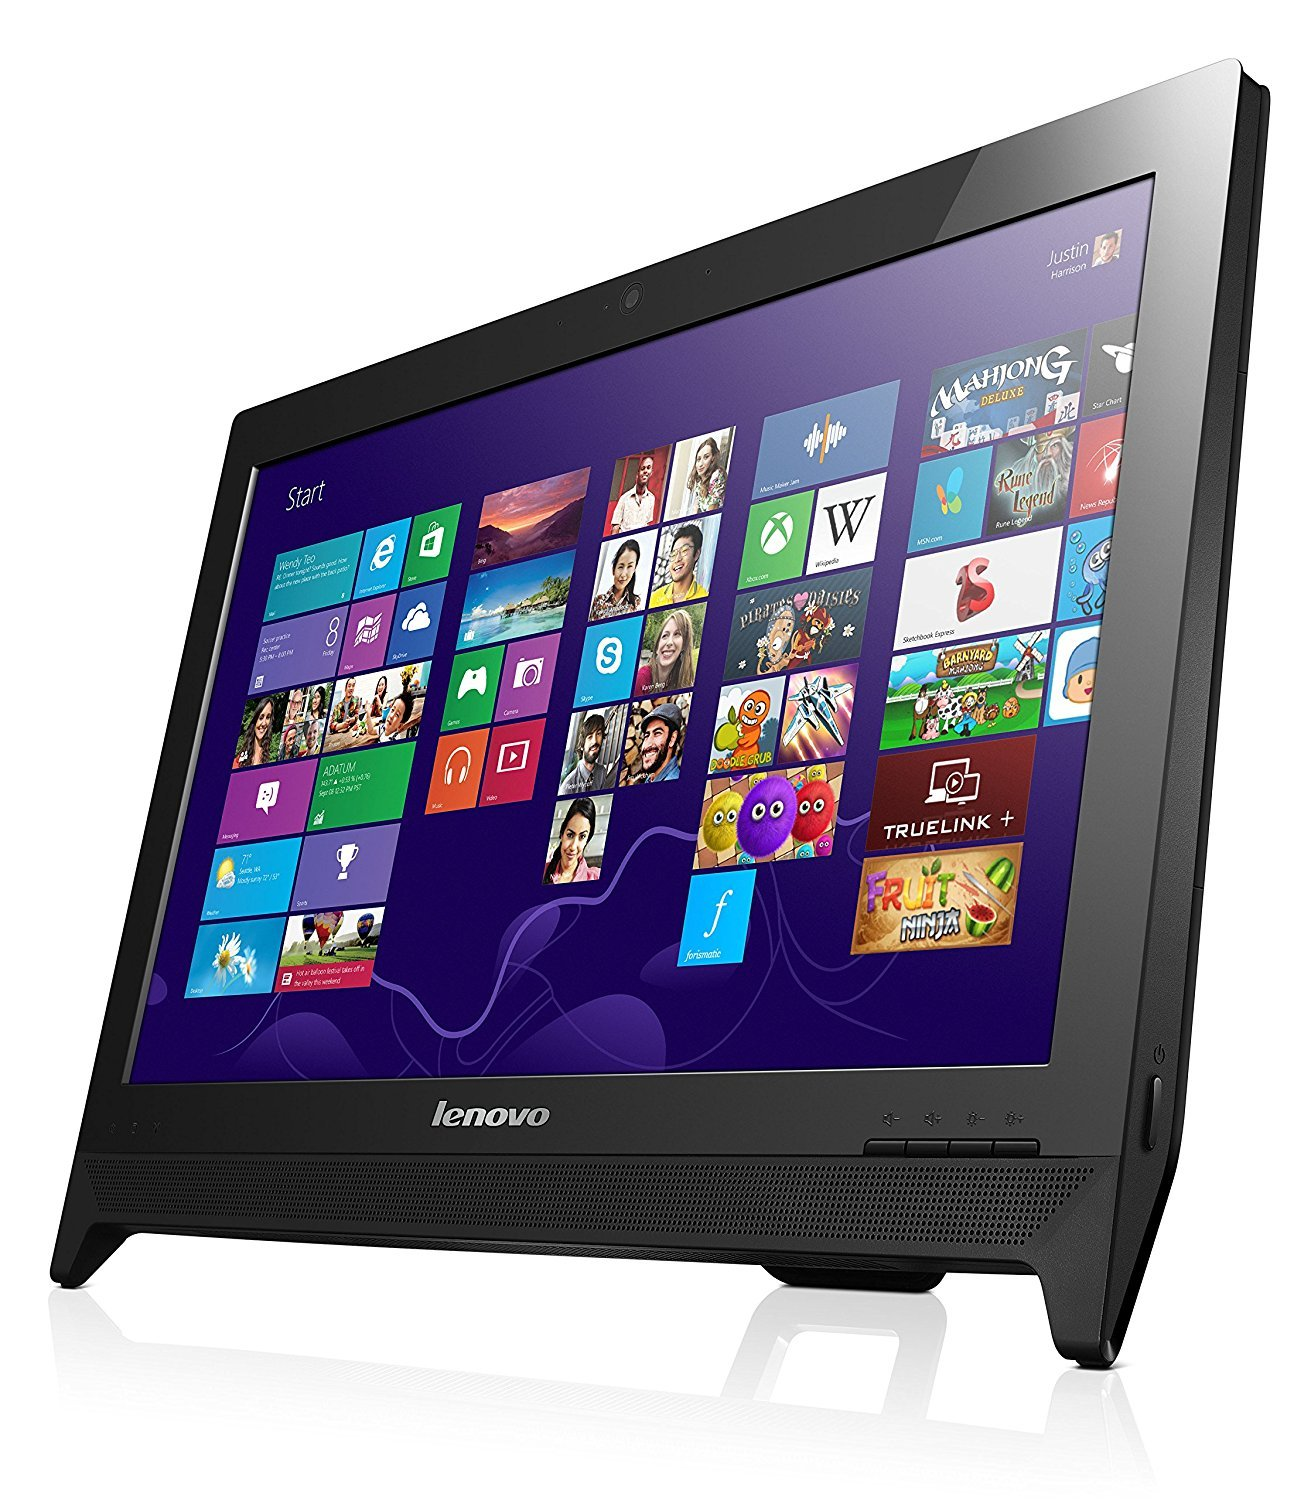 3db3f29b3 Lenovo C260 57328206 19.5-inch All-in-one Desktop  (Celeron J1800 2GB 500GB Win 8.1 Integrated Graphics)